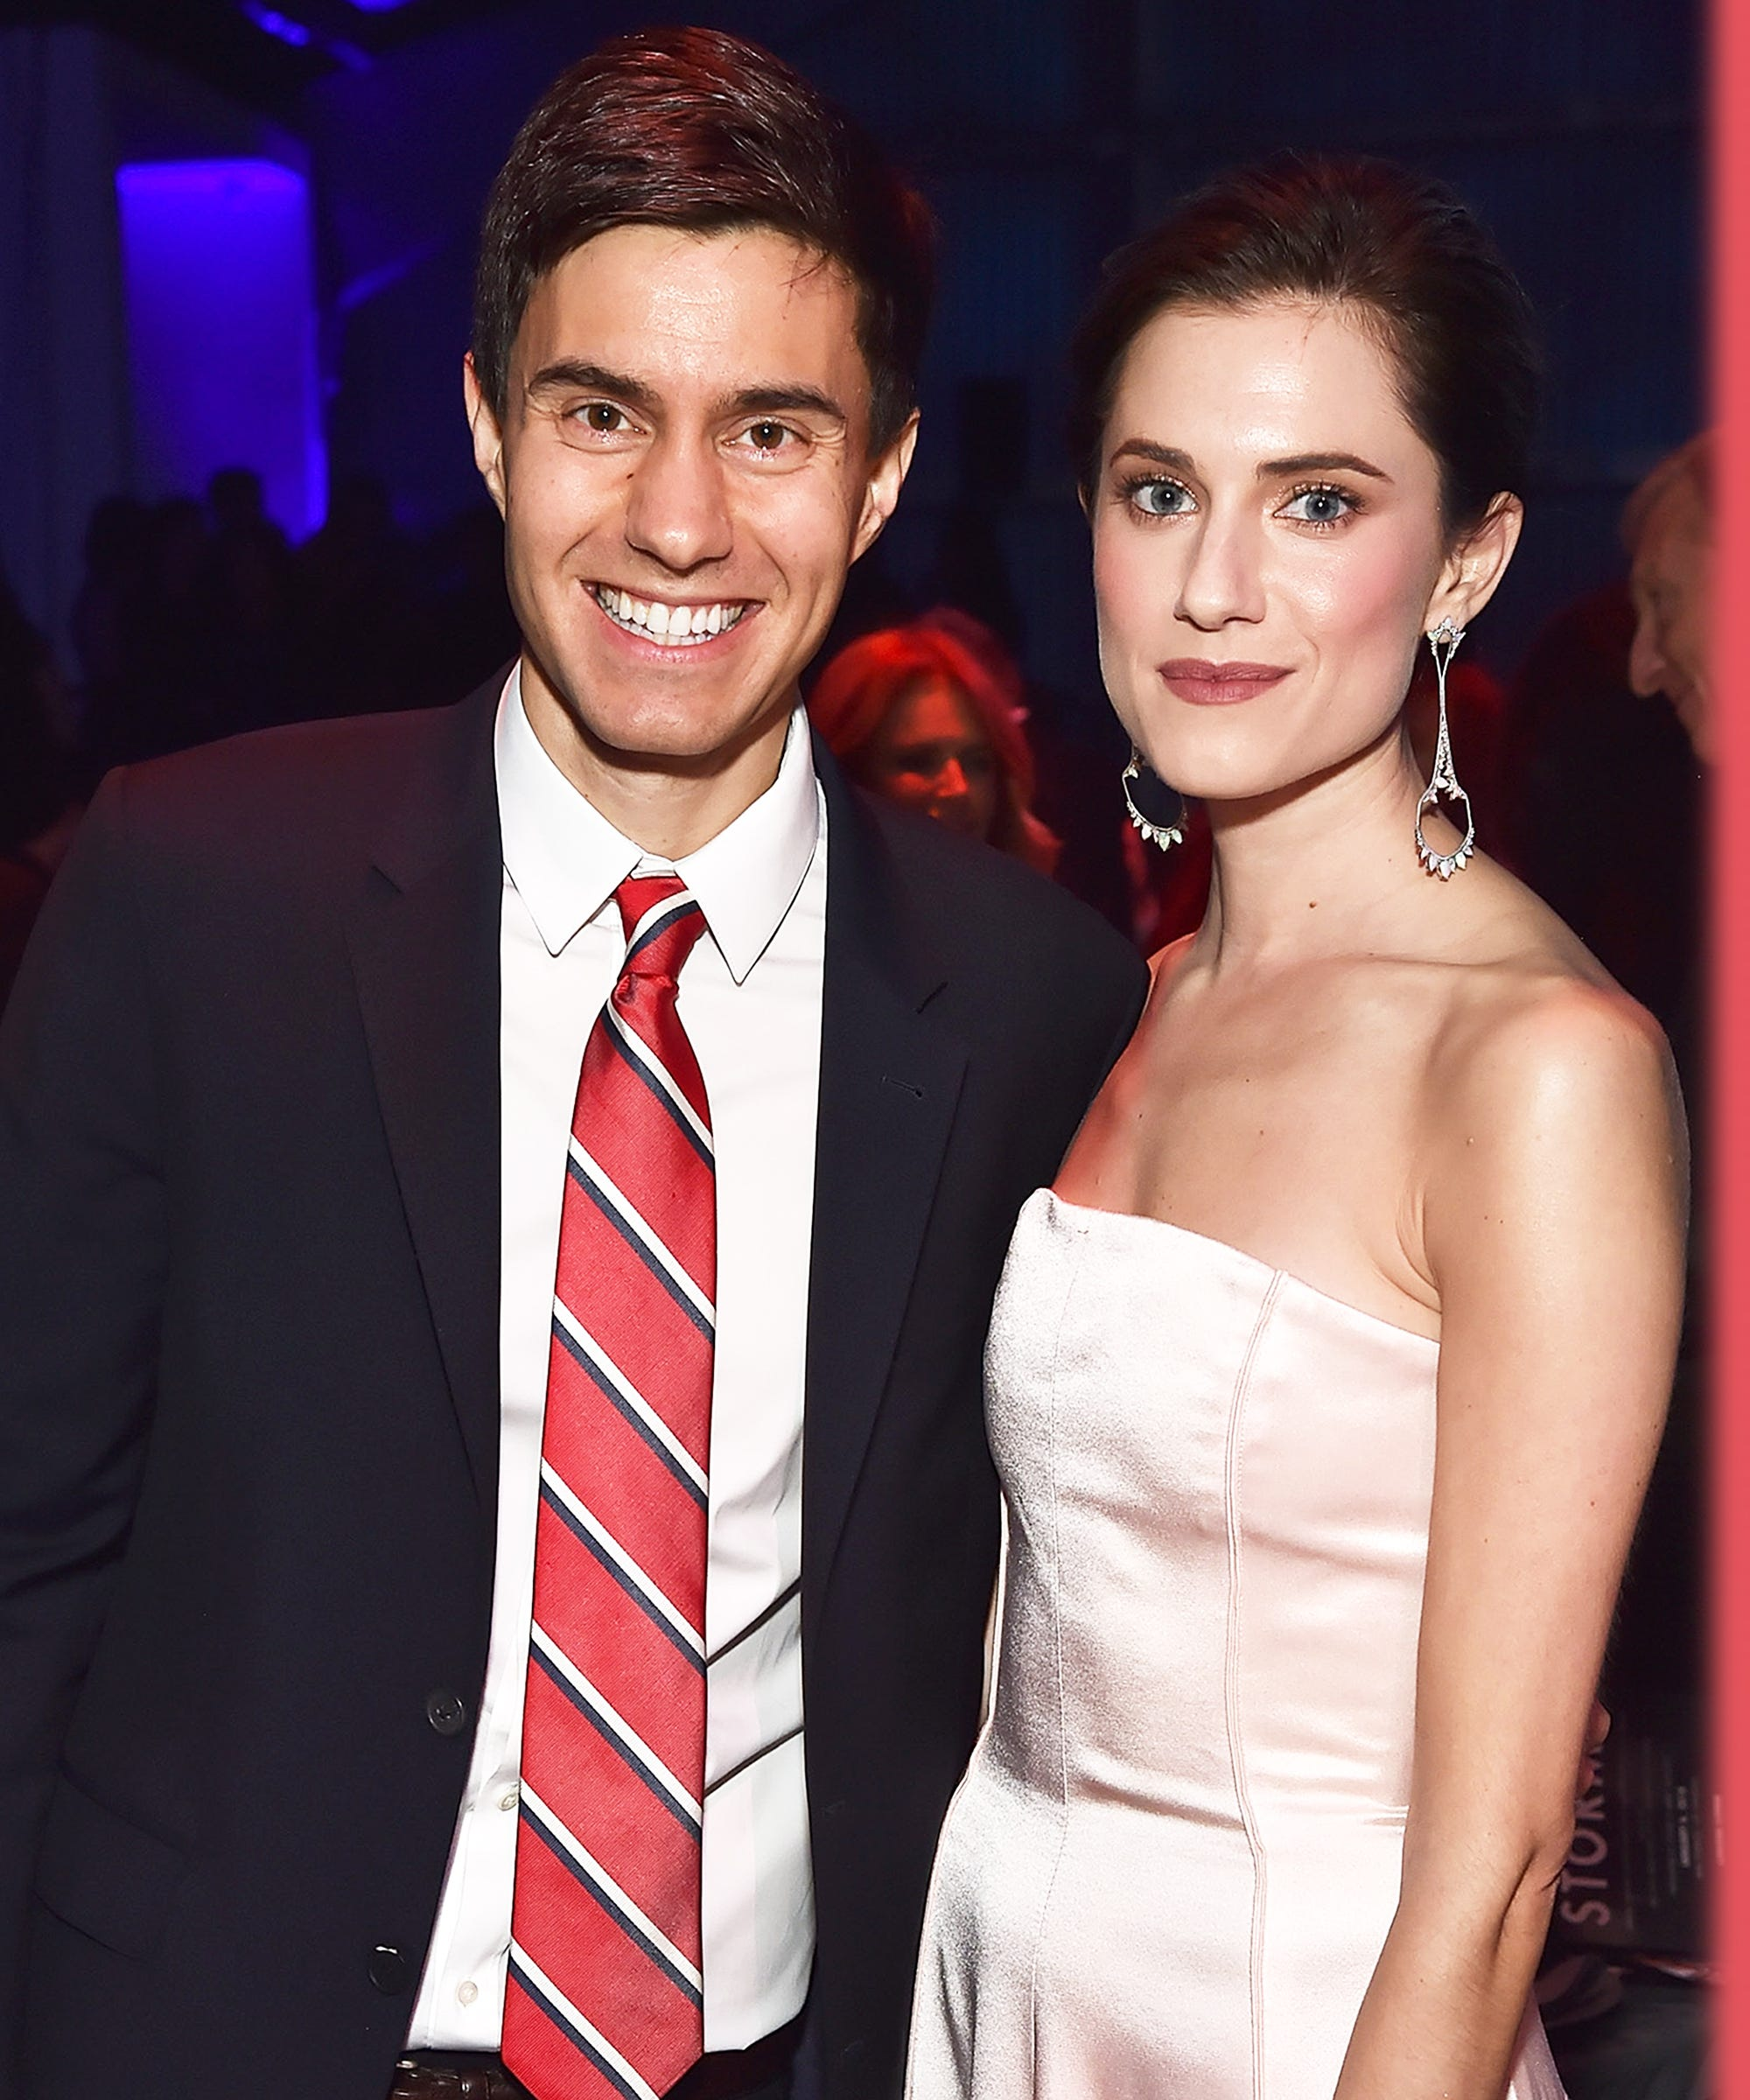 After Nearly 4 Years Together, Allison Williams & Husband Split